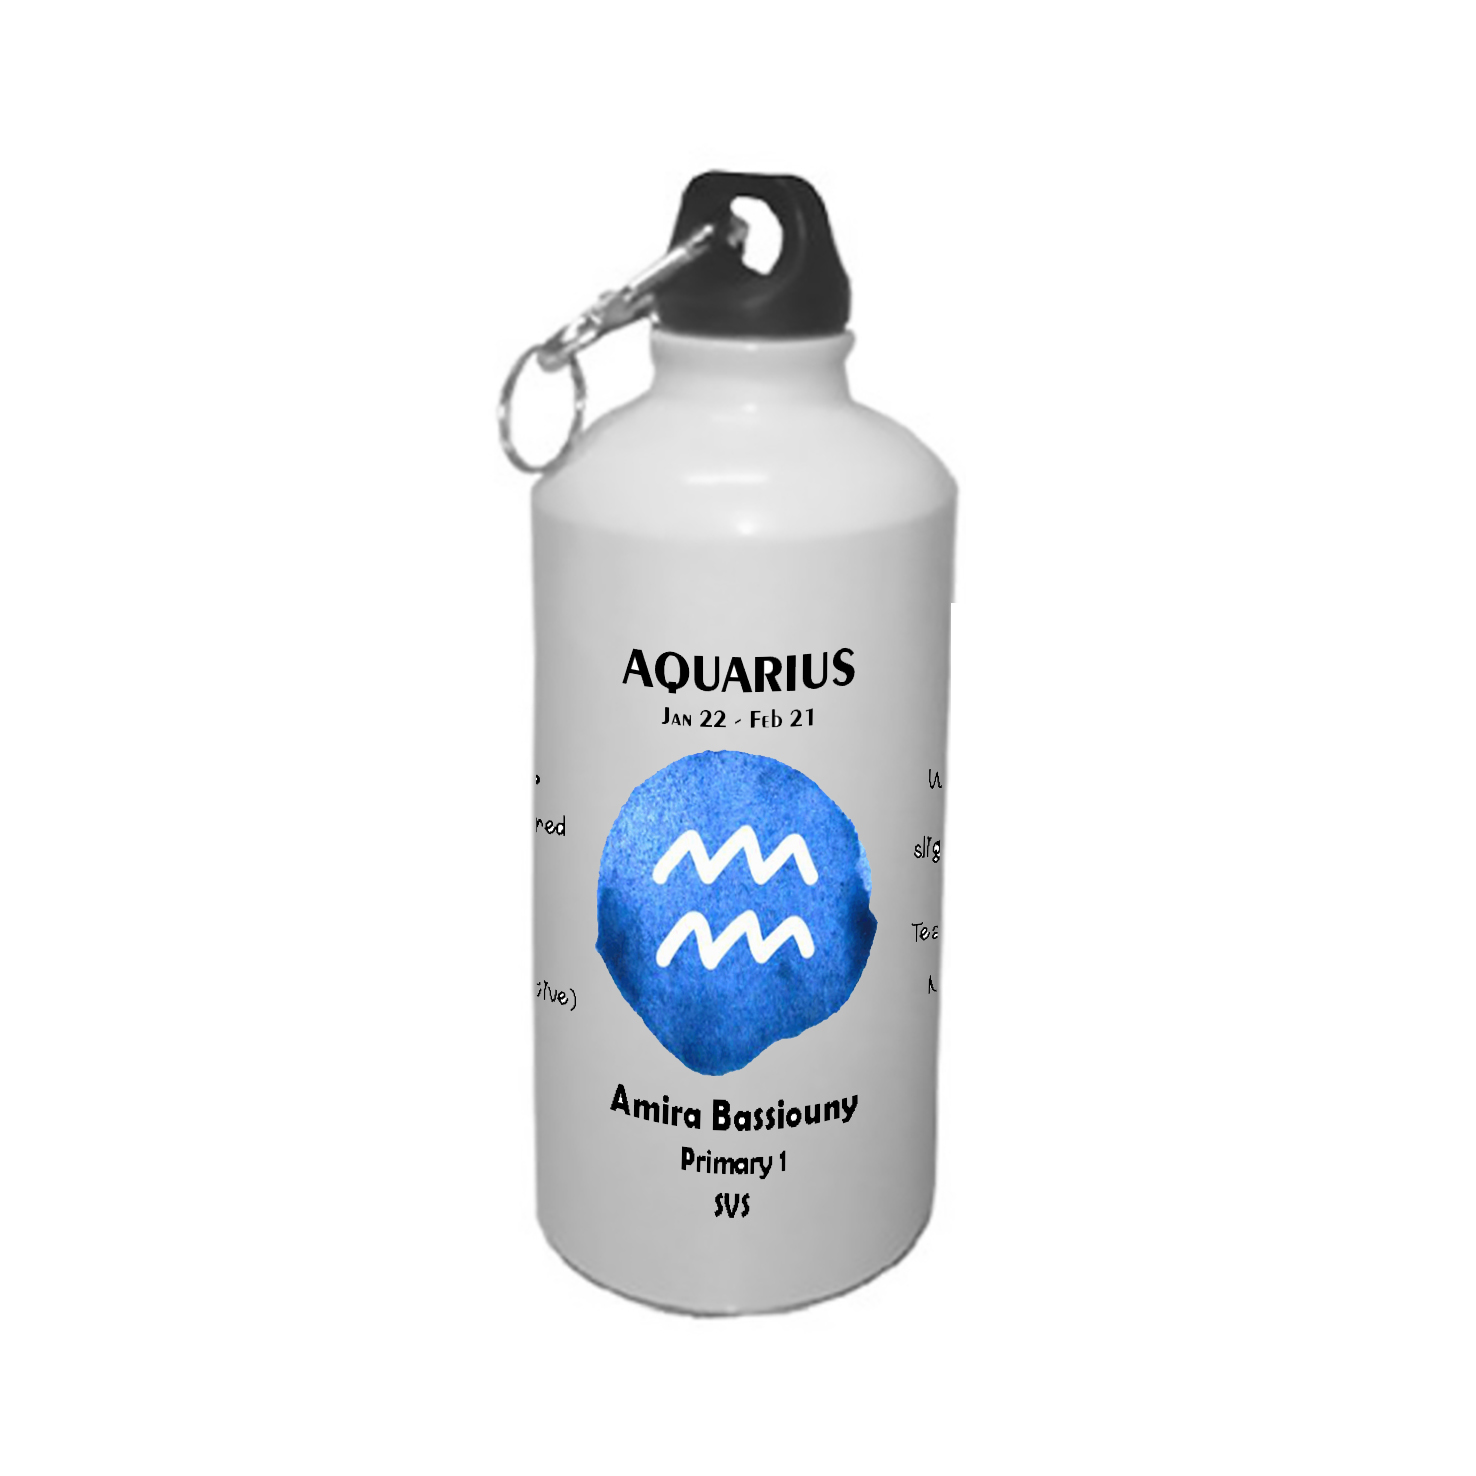 aquarius bottle